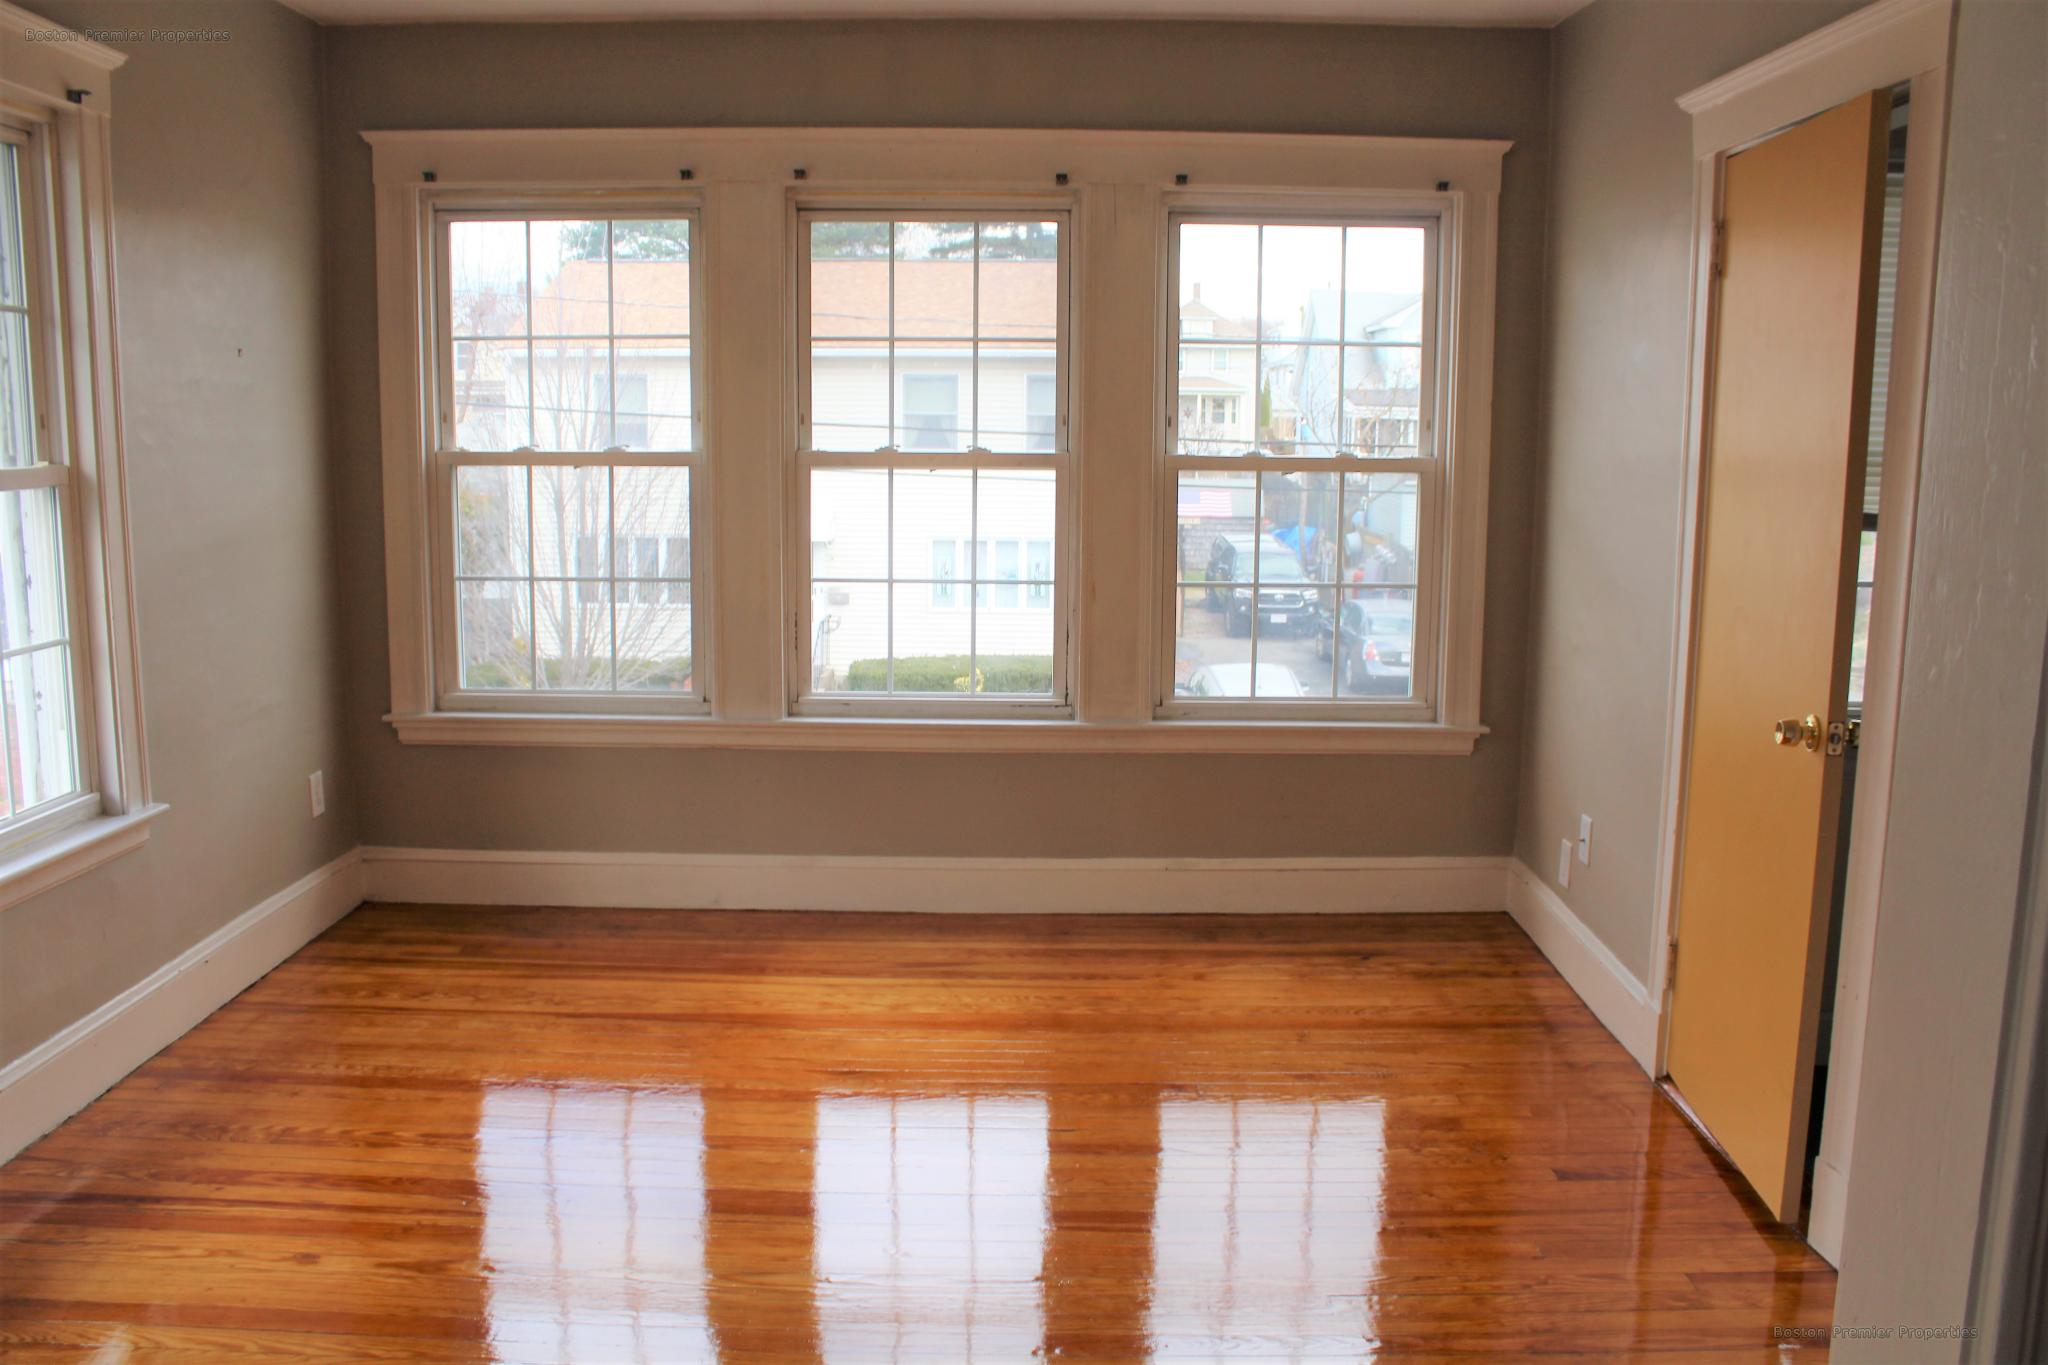 Beautiful 1 bedroom apartment with newly refinished hard wood floors